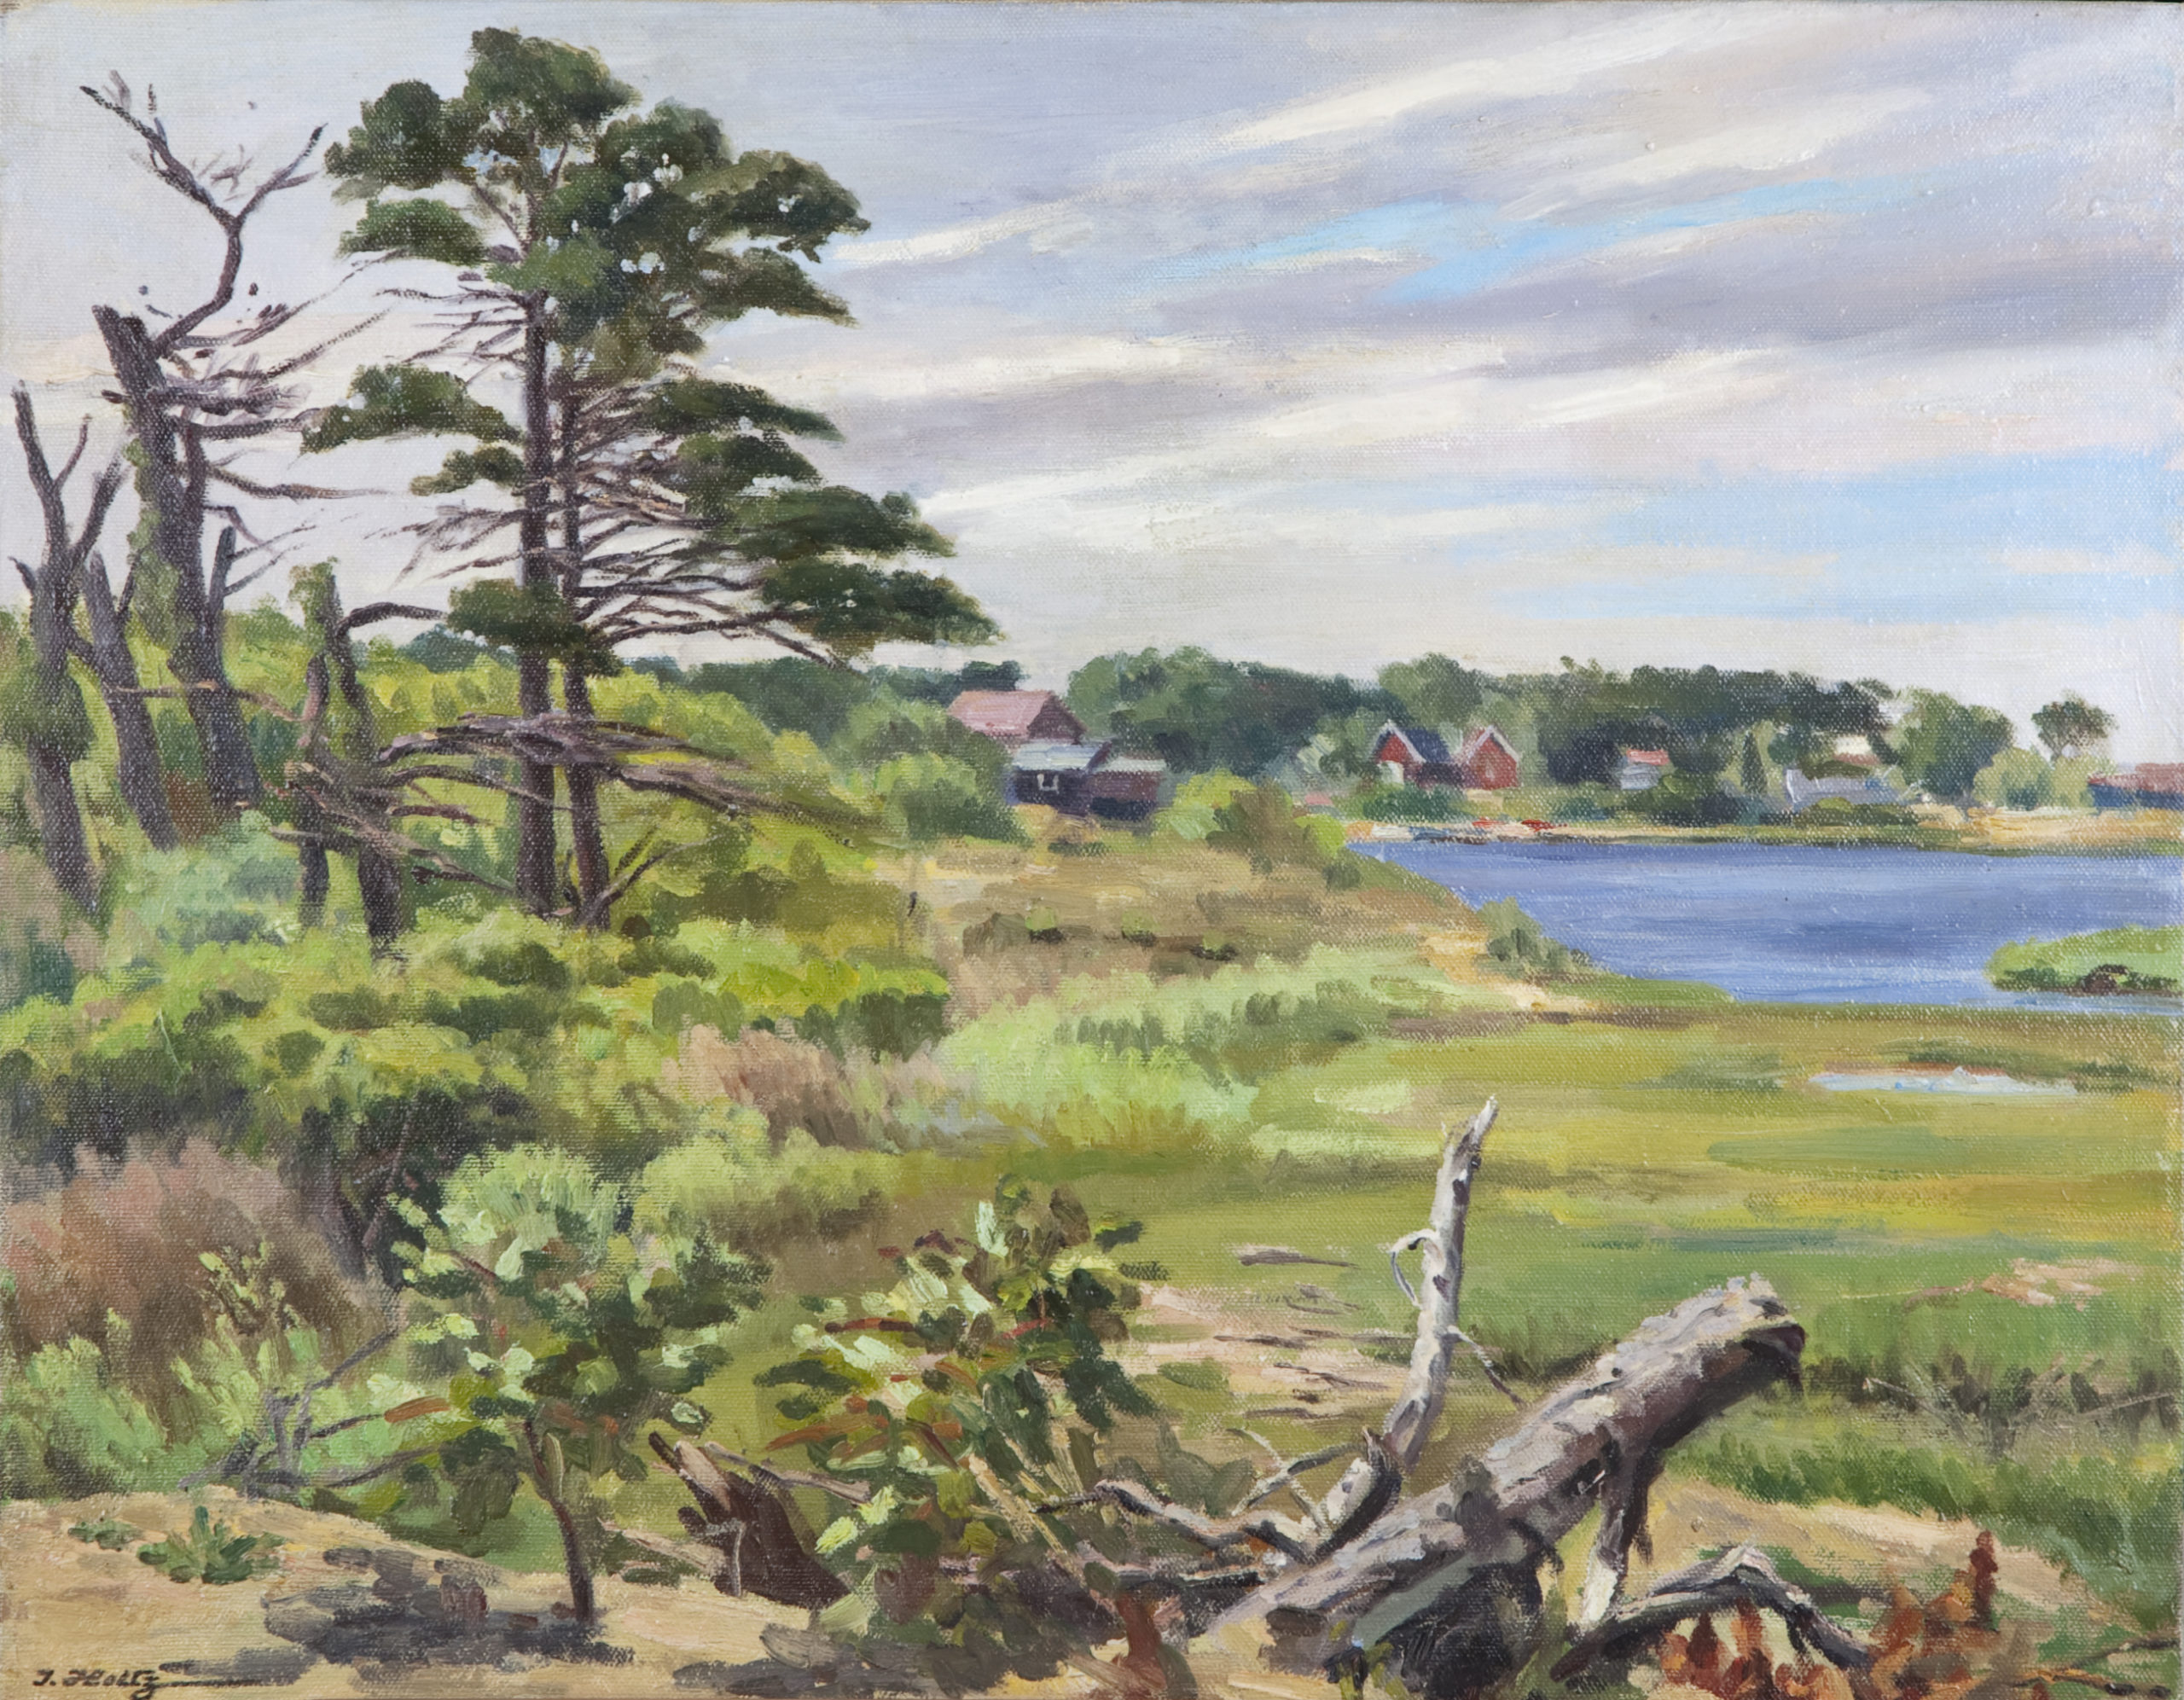 142 Along Cape Cod 1965 - Oil on Canvas - 20 x 16 - No Frame